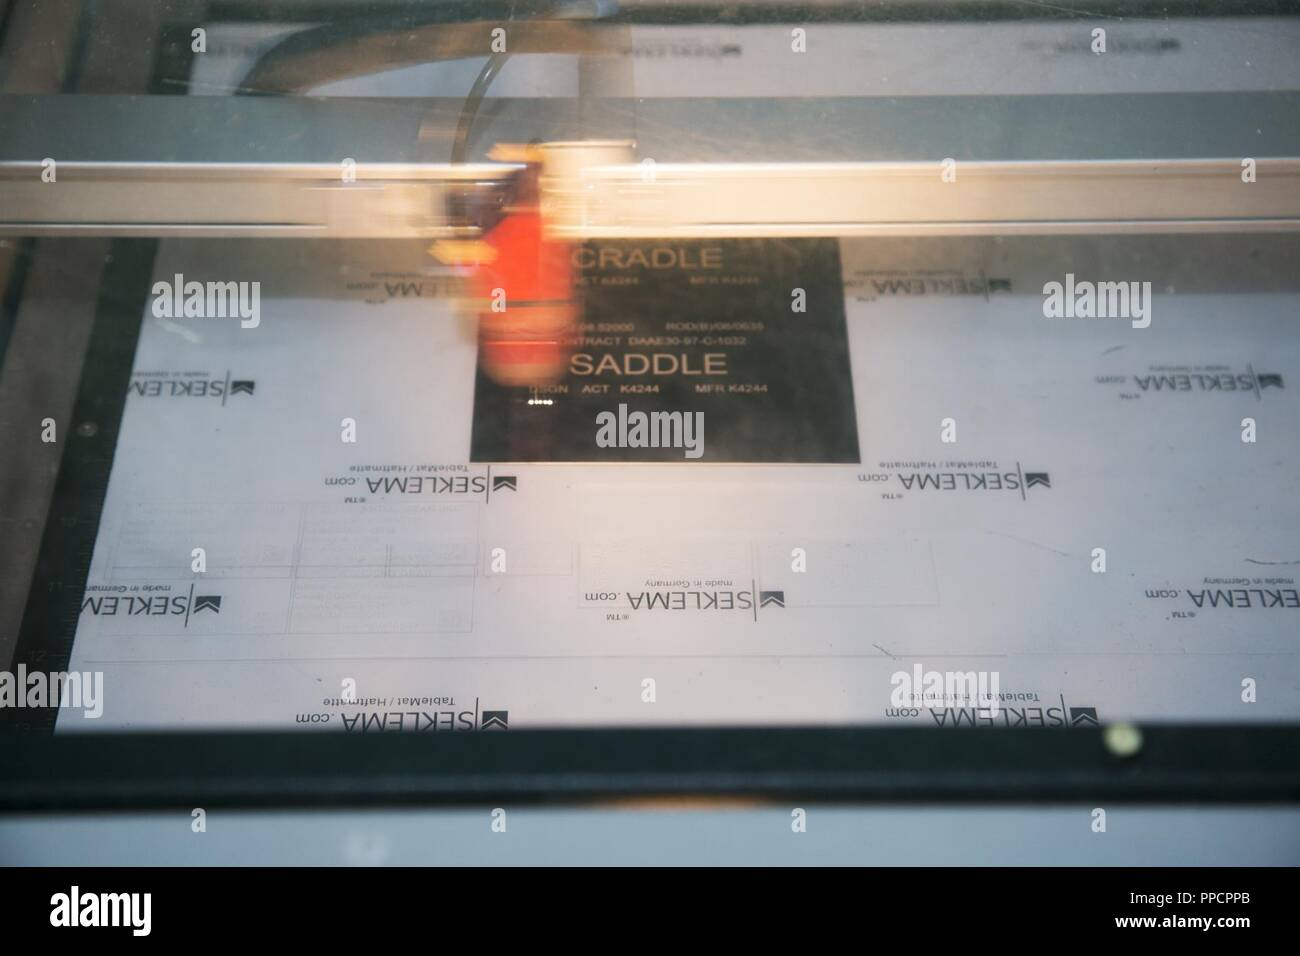 The laser engraving head moves at a speed almost too fast to follow